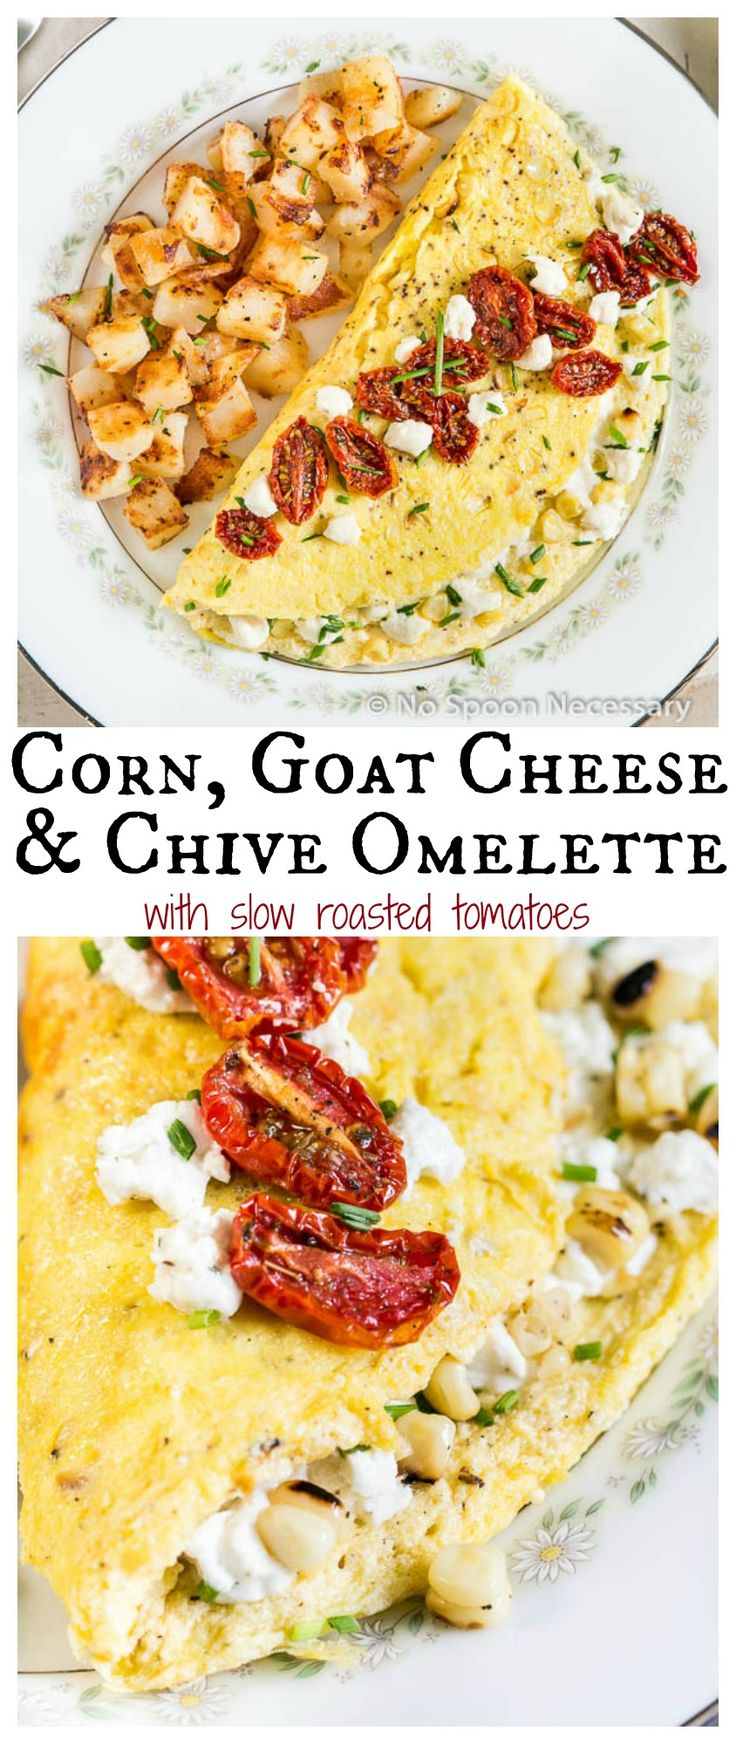 Fluffly Corn, Goat Cheese & Chive Omelettes with slow roasted tomatoes